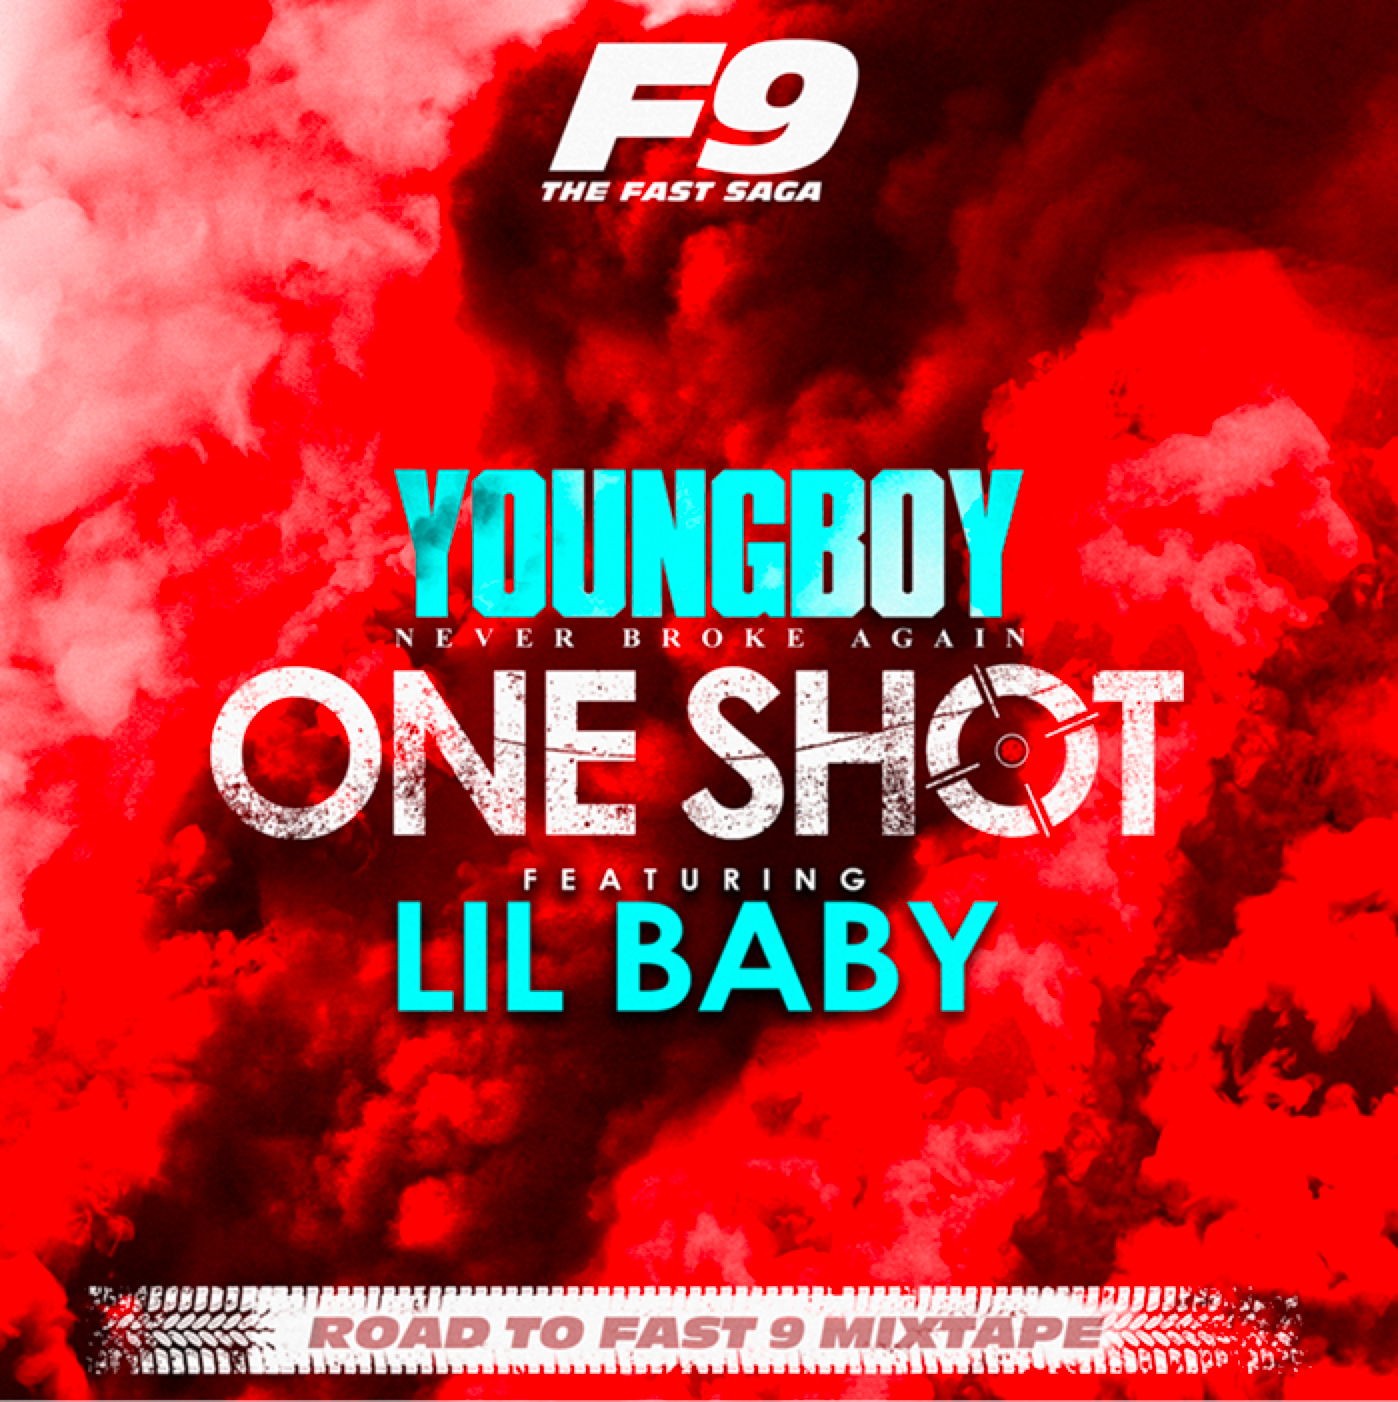 Fast and Furious – The Road to F9 Mixtape